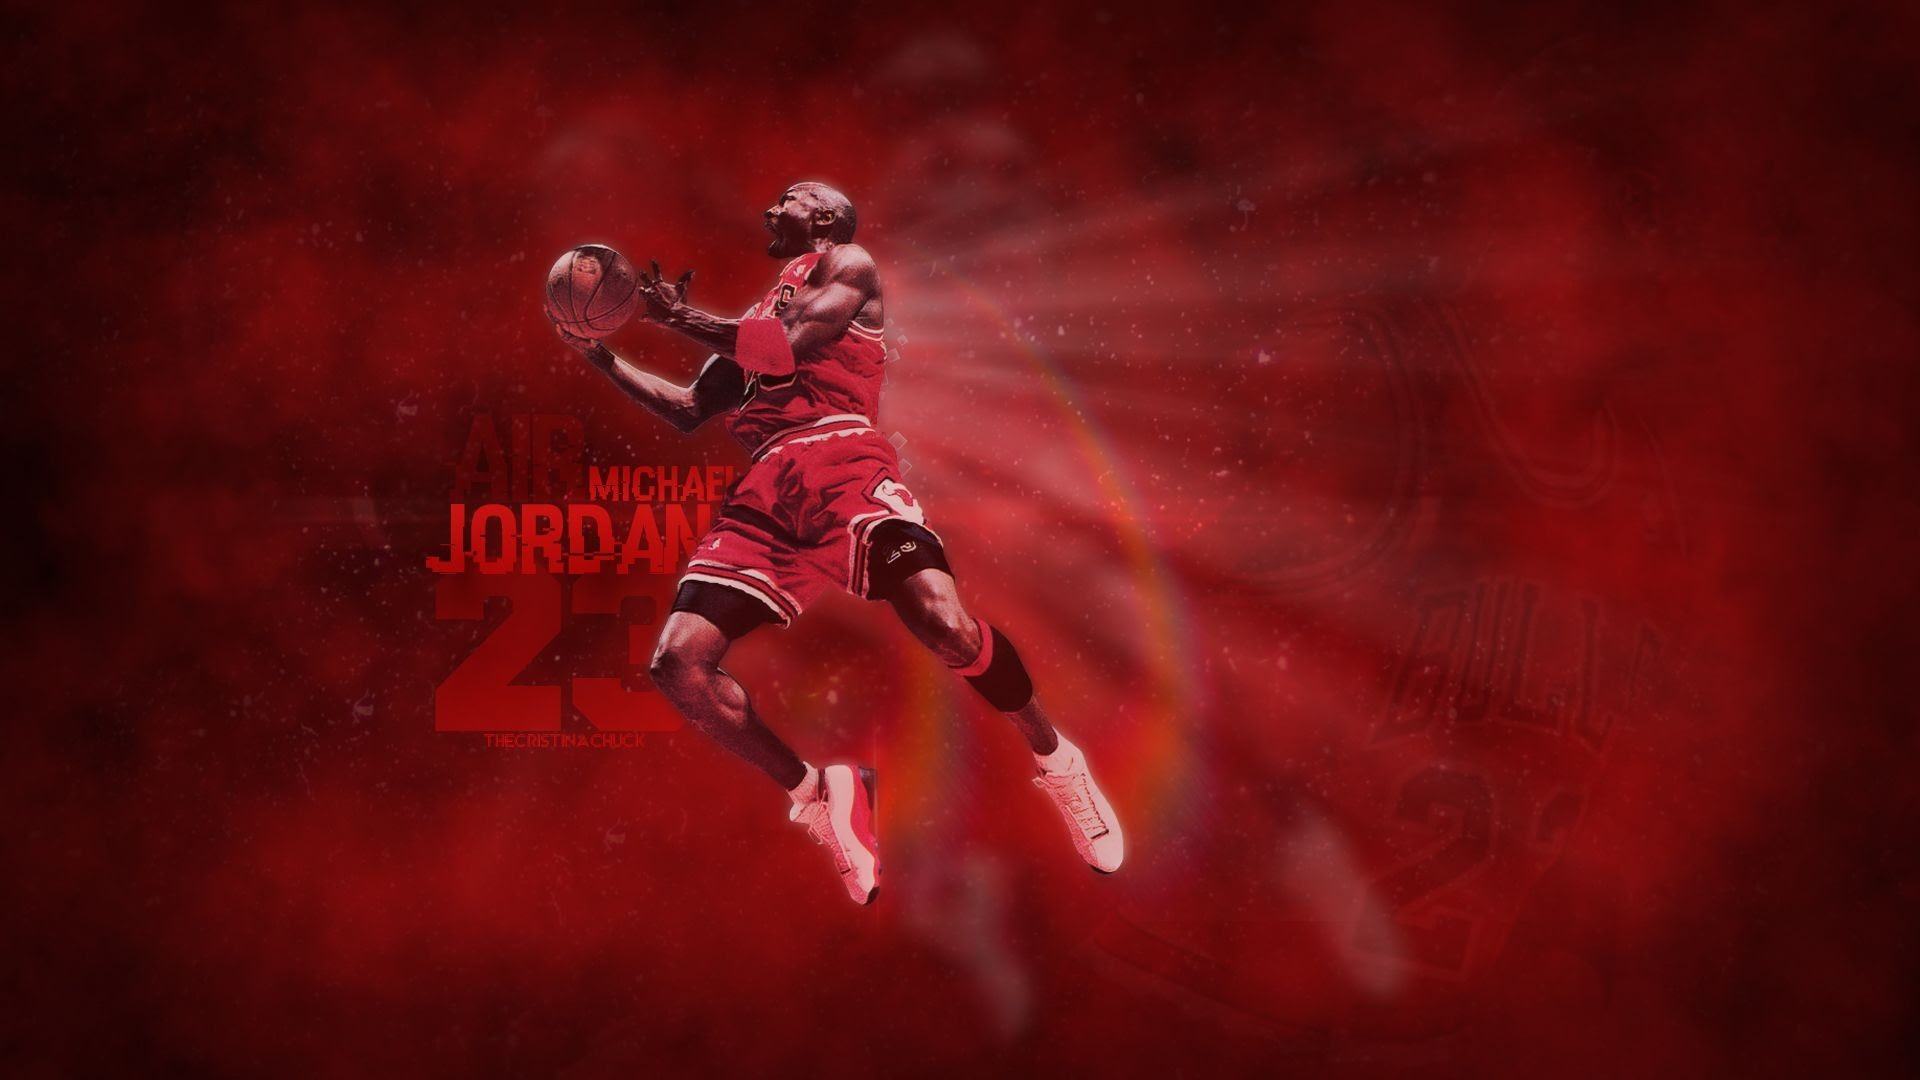 Wallpaper Iphone Jordan Logo Wallpaper Iphone X